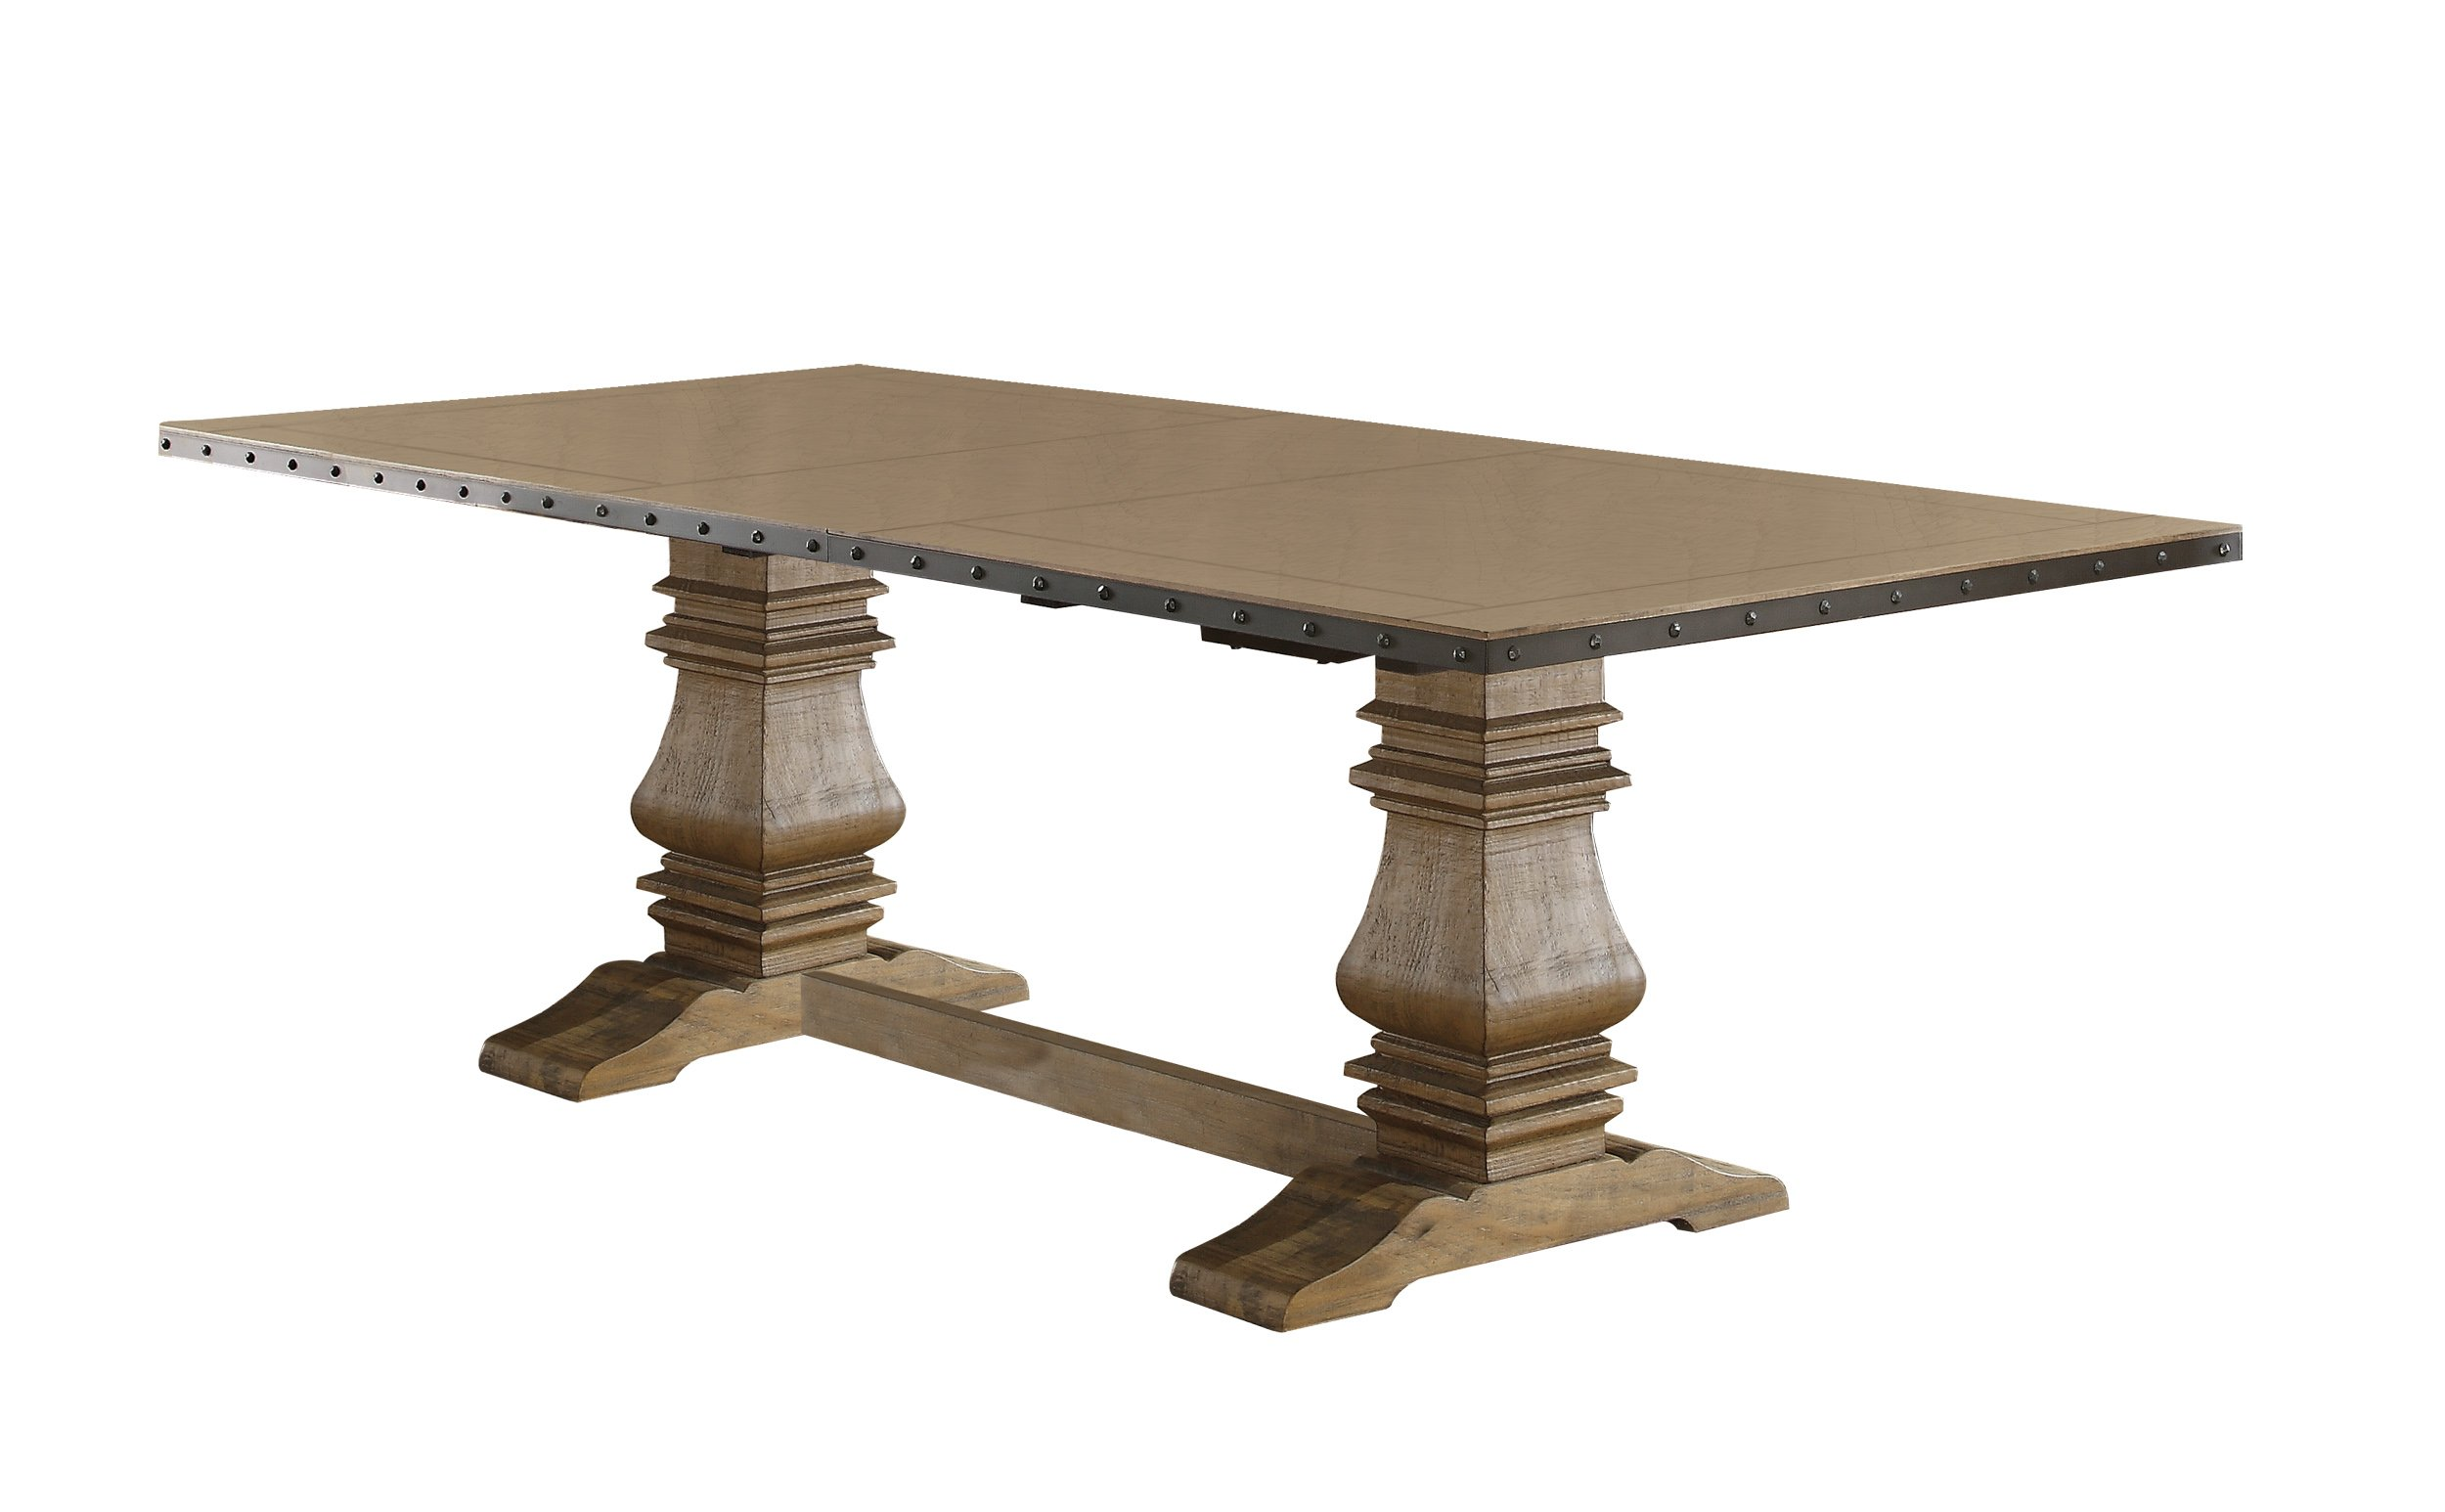 Homelegance Veltry Rectangular Double Pedestal Dining Table with Metal Nail head Accent Banding, Rustic Oak